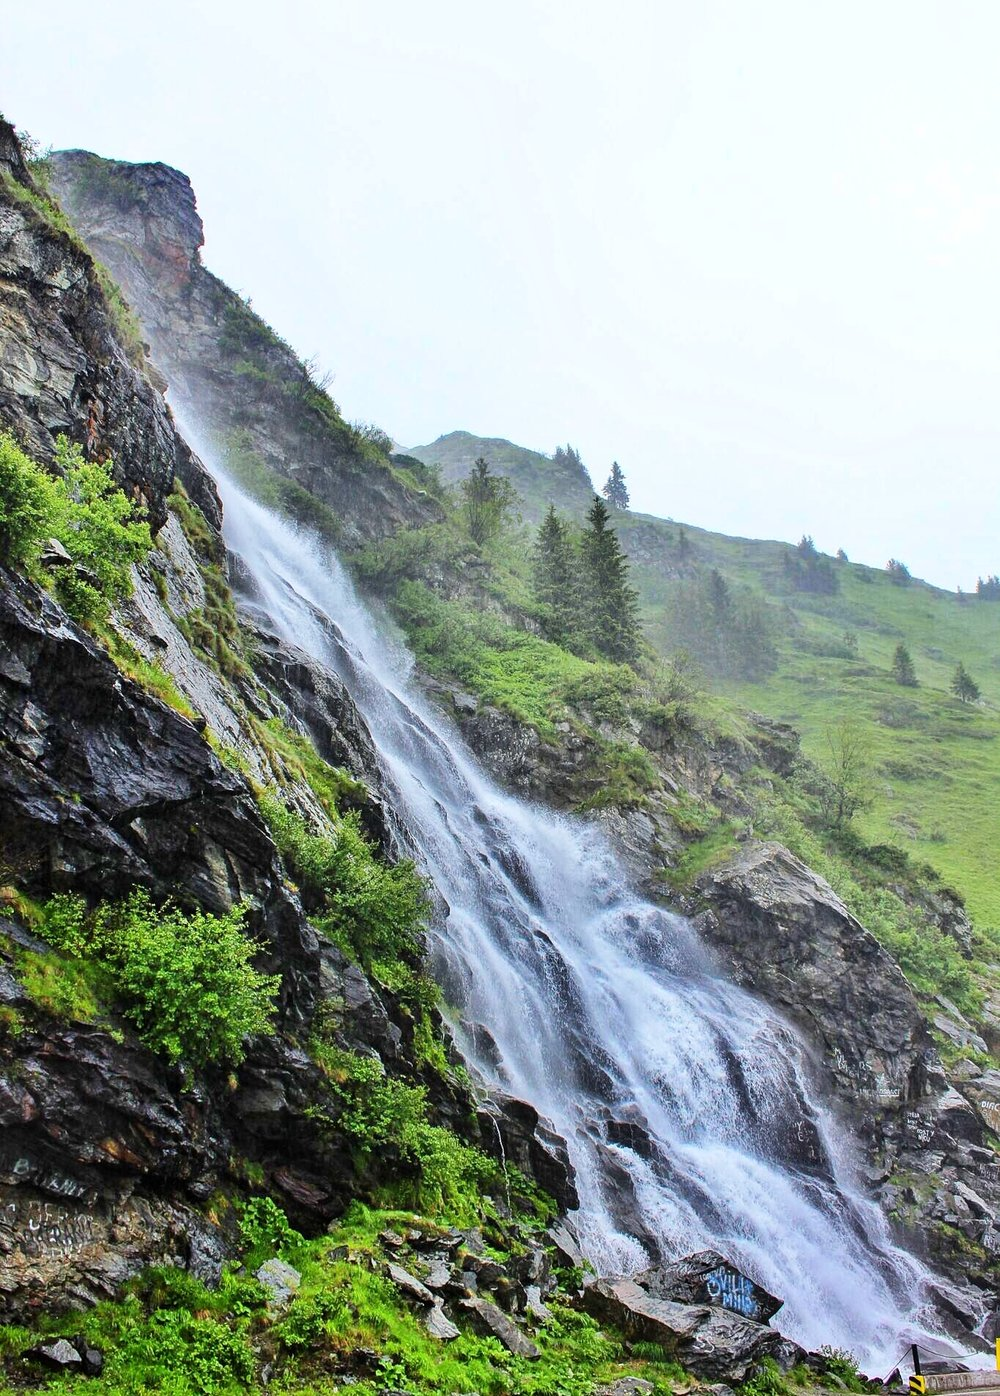 Incredible waterfall in the middle of the Transfăgărășan road crossing